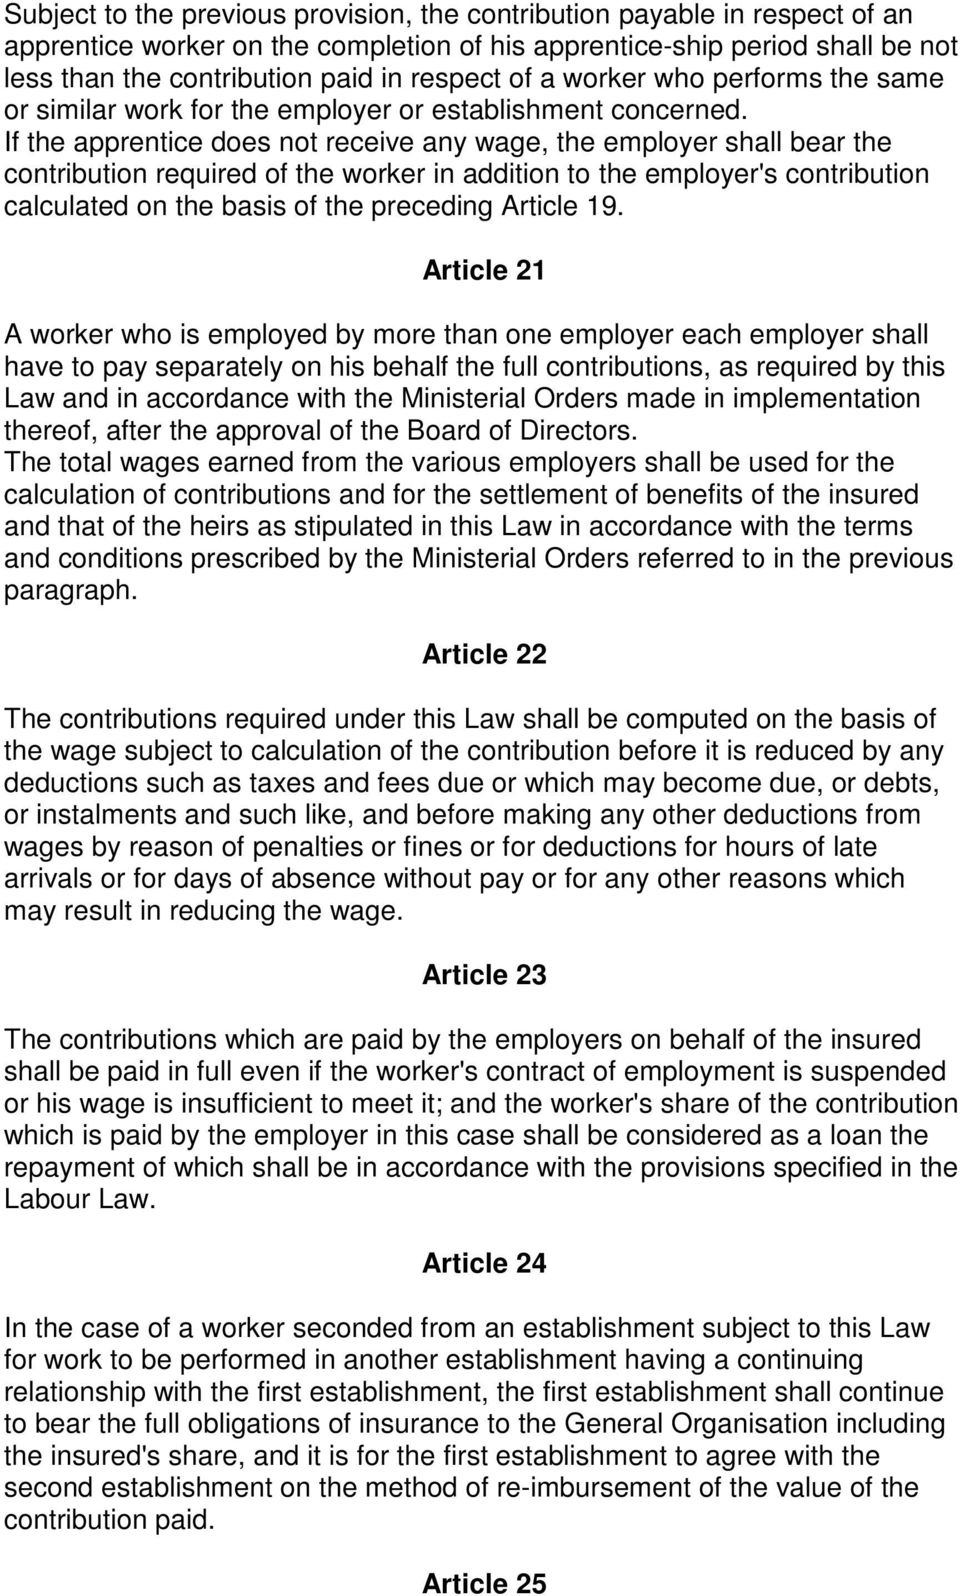 If the apprentice does not receive any wage, the employer shall bear the contribution required of the worker in addition to the employer's contribution calculated on the basis of the preceding